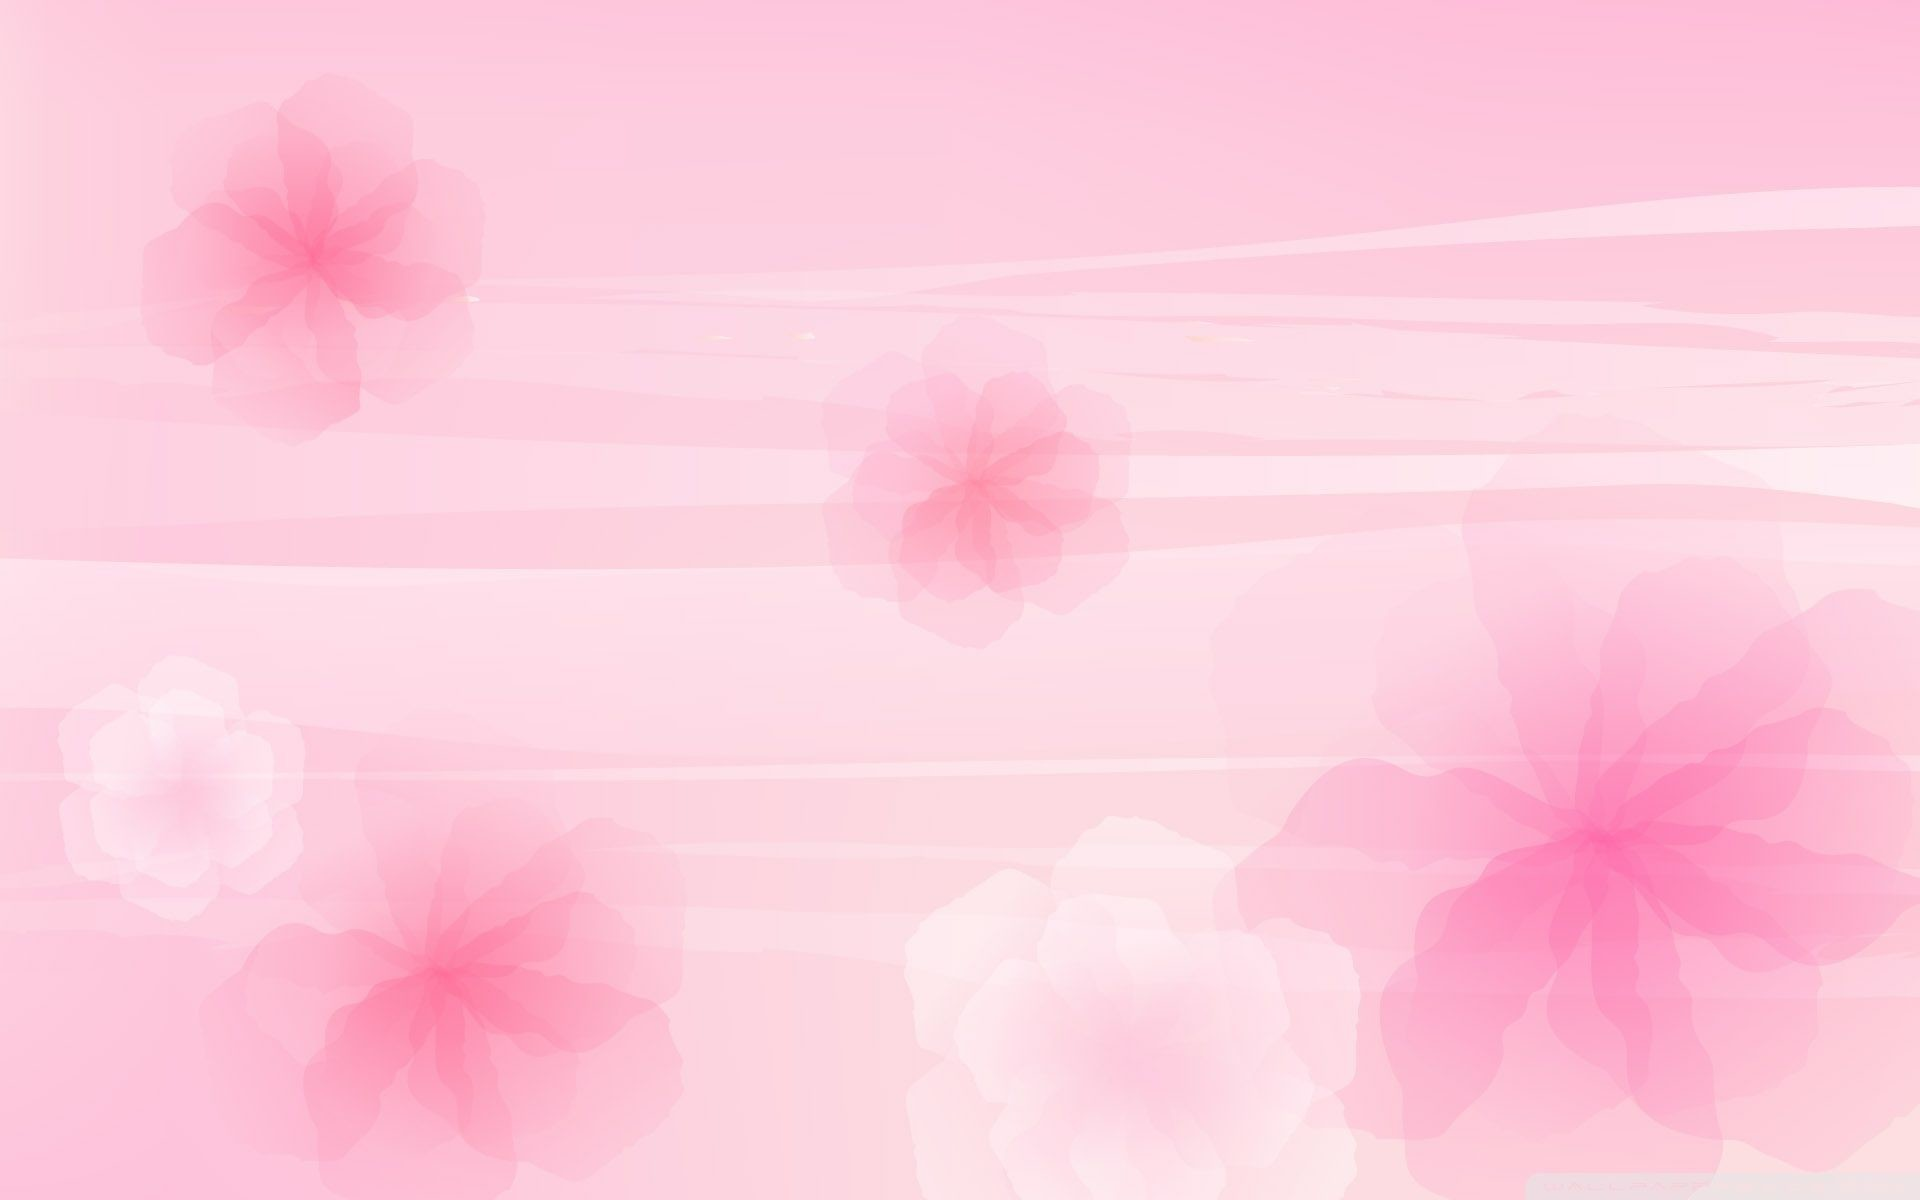 1920x1200 Pink Backgrounds Wallpapers) – Wallpapers and Backgrounds